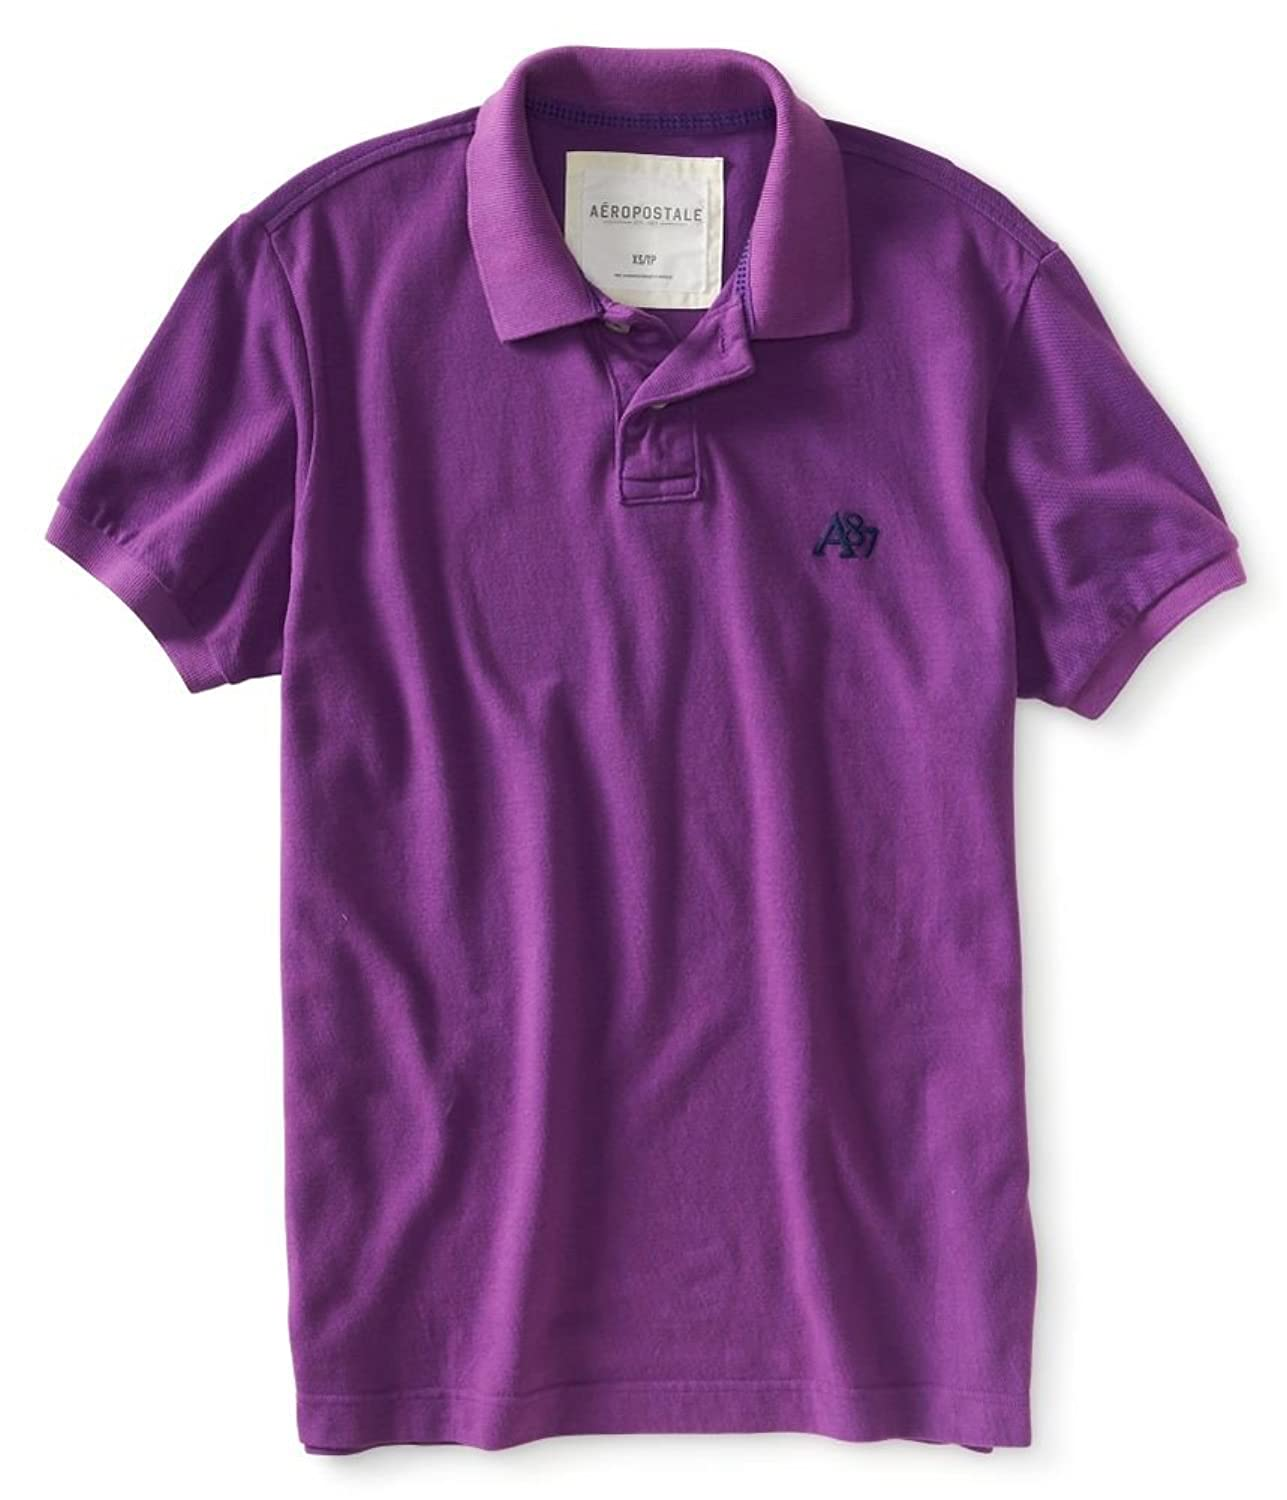 Aeropostale Men's Solid Heathered Rugby Polo Shirt